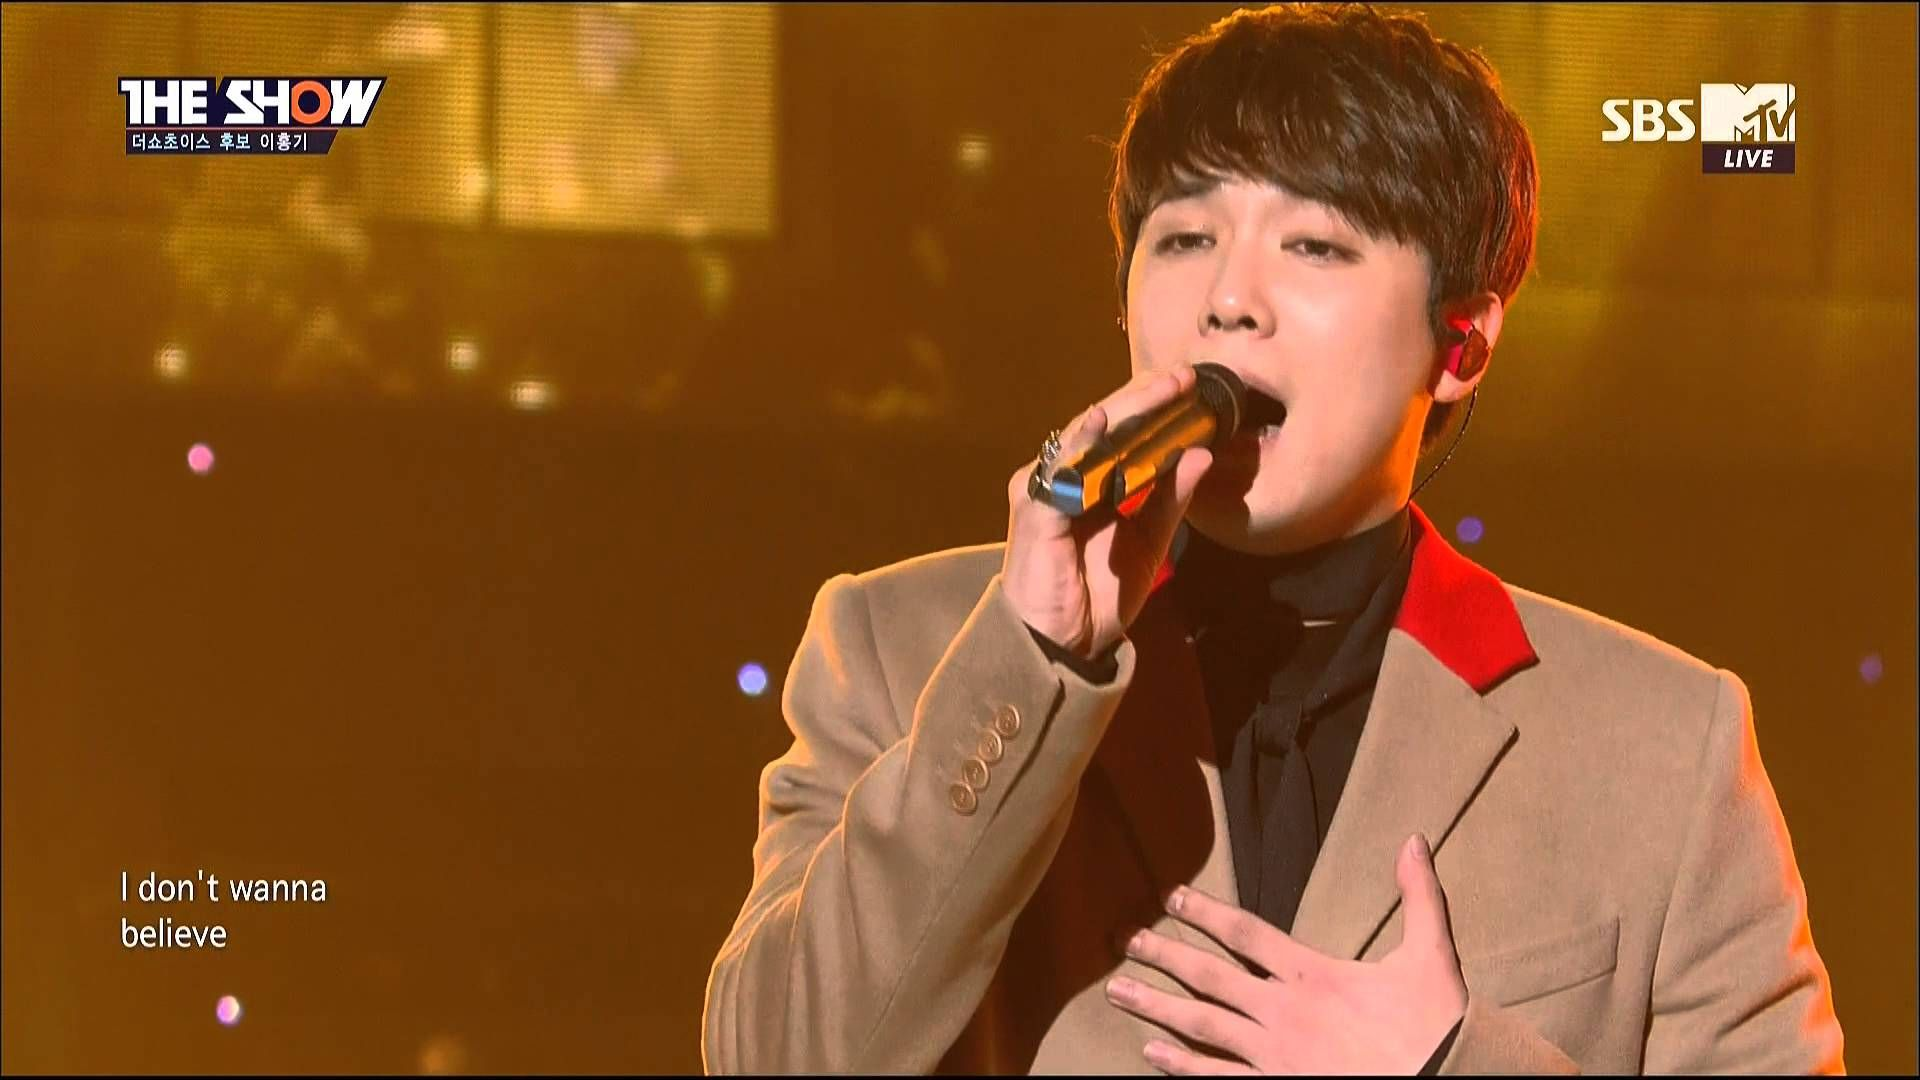 151124 LEE HONG GI (이홍기) - Insensible (눈치 없이) @ THE SHOW 더쇼